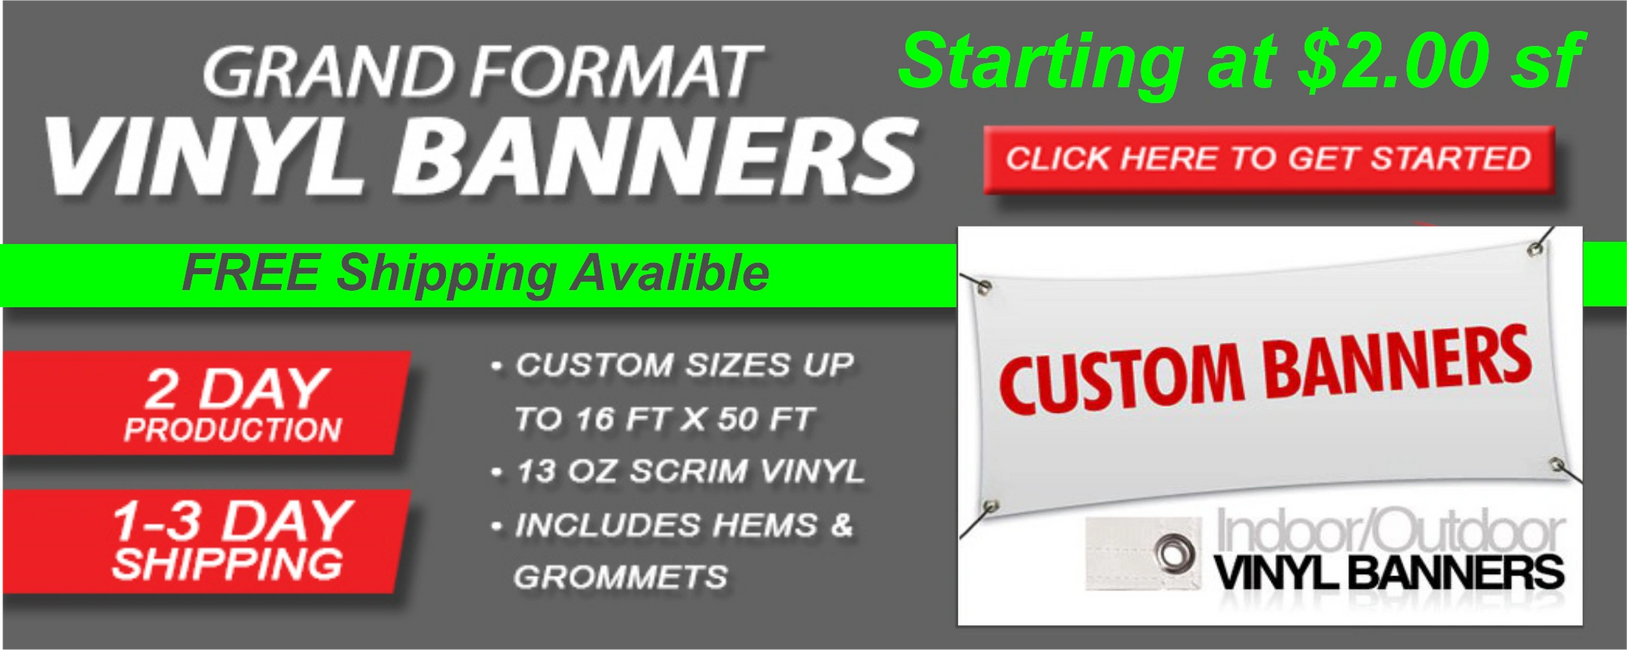 wholesale banners boise ID idaho meridian caldwell nampa eagle crypto decal sticker business vinyl